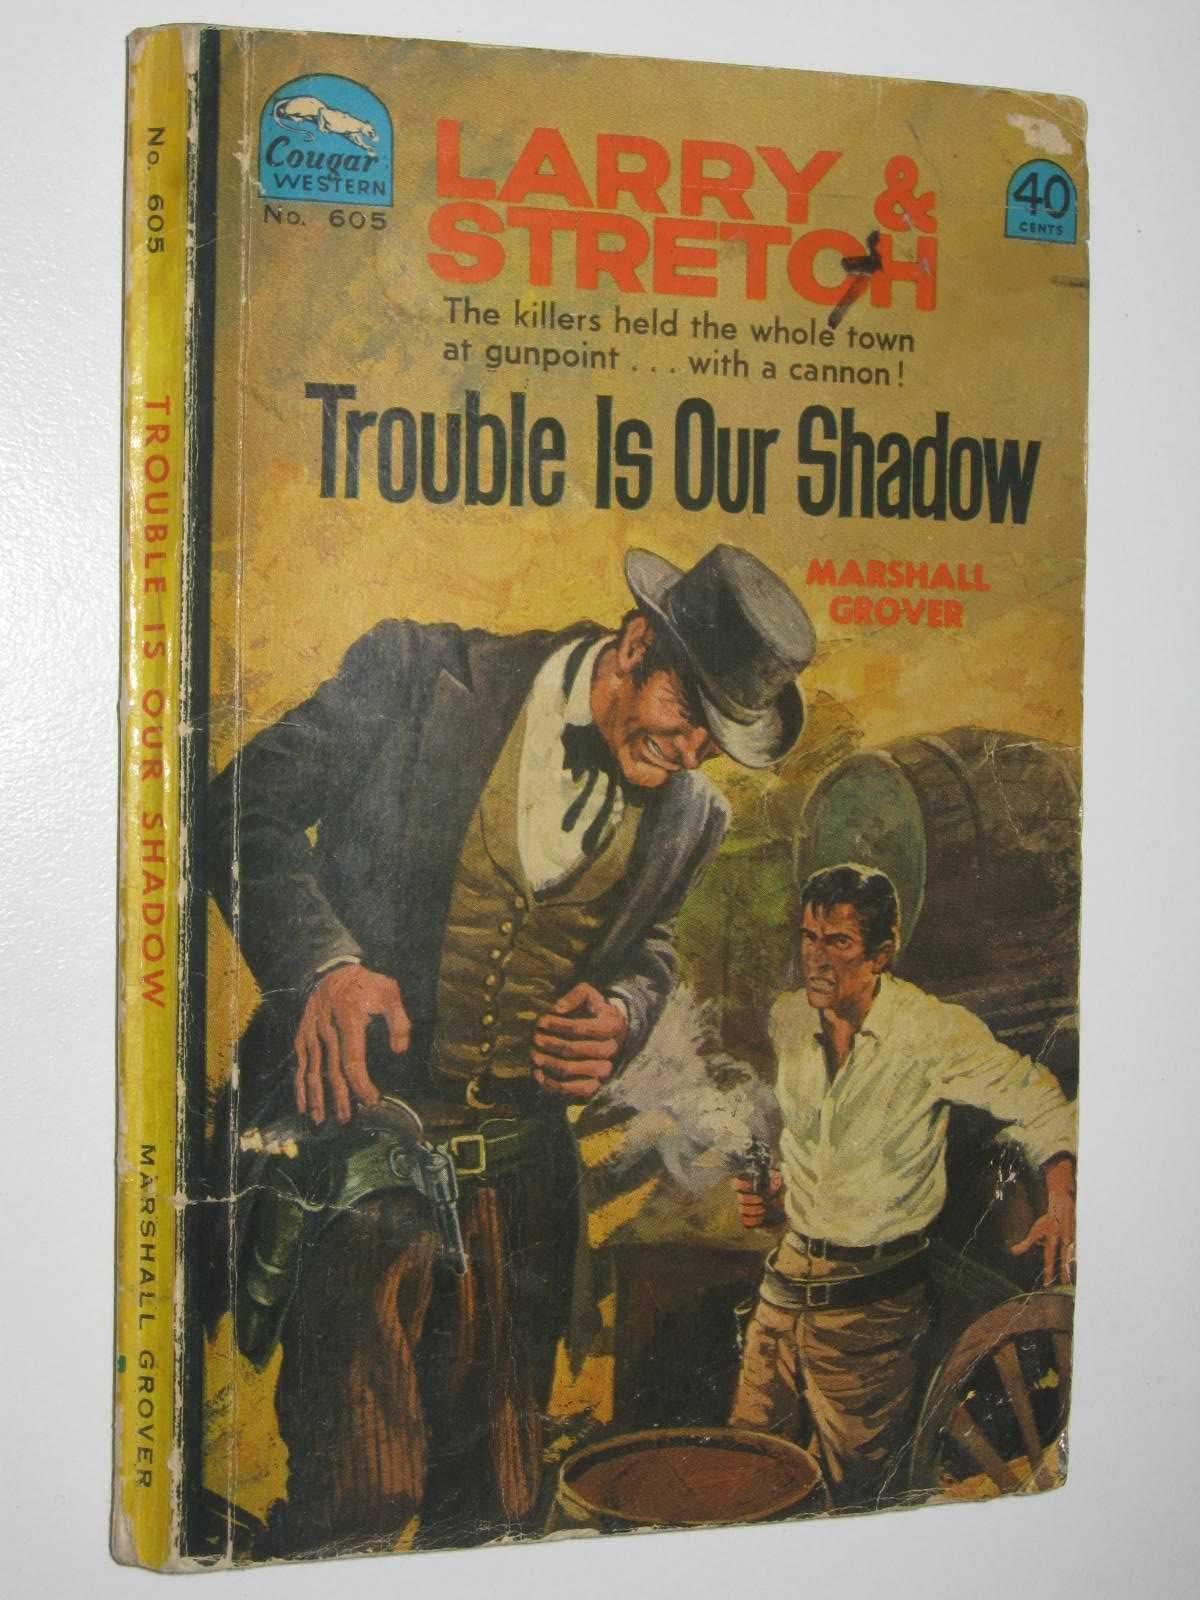 Image for Trouble is Our Shadow - Larry and Stretch [Cougar Western] Series #605